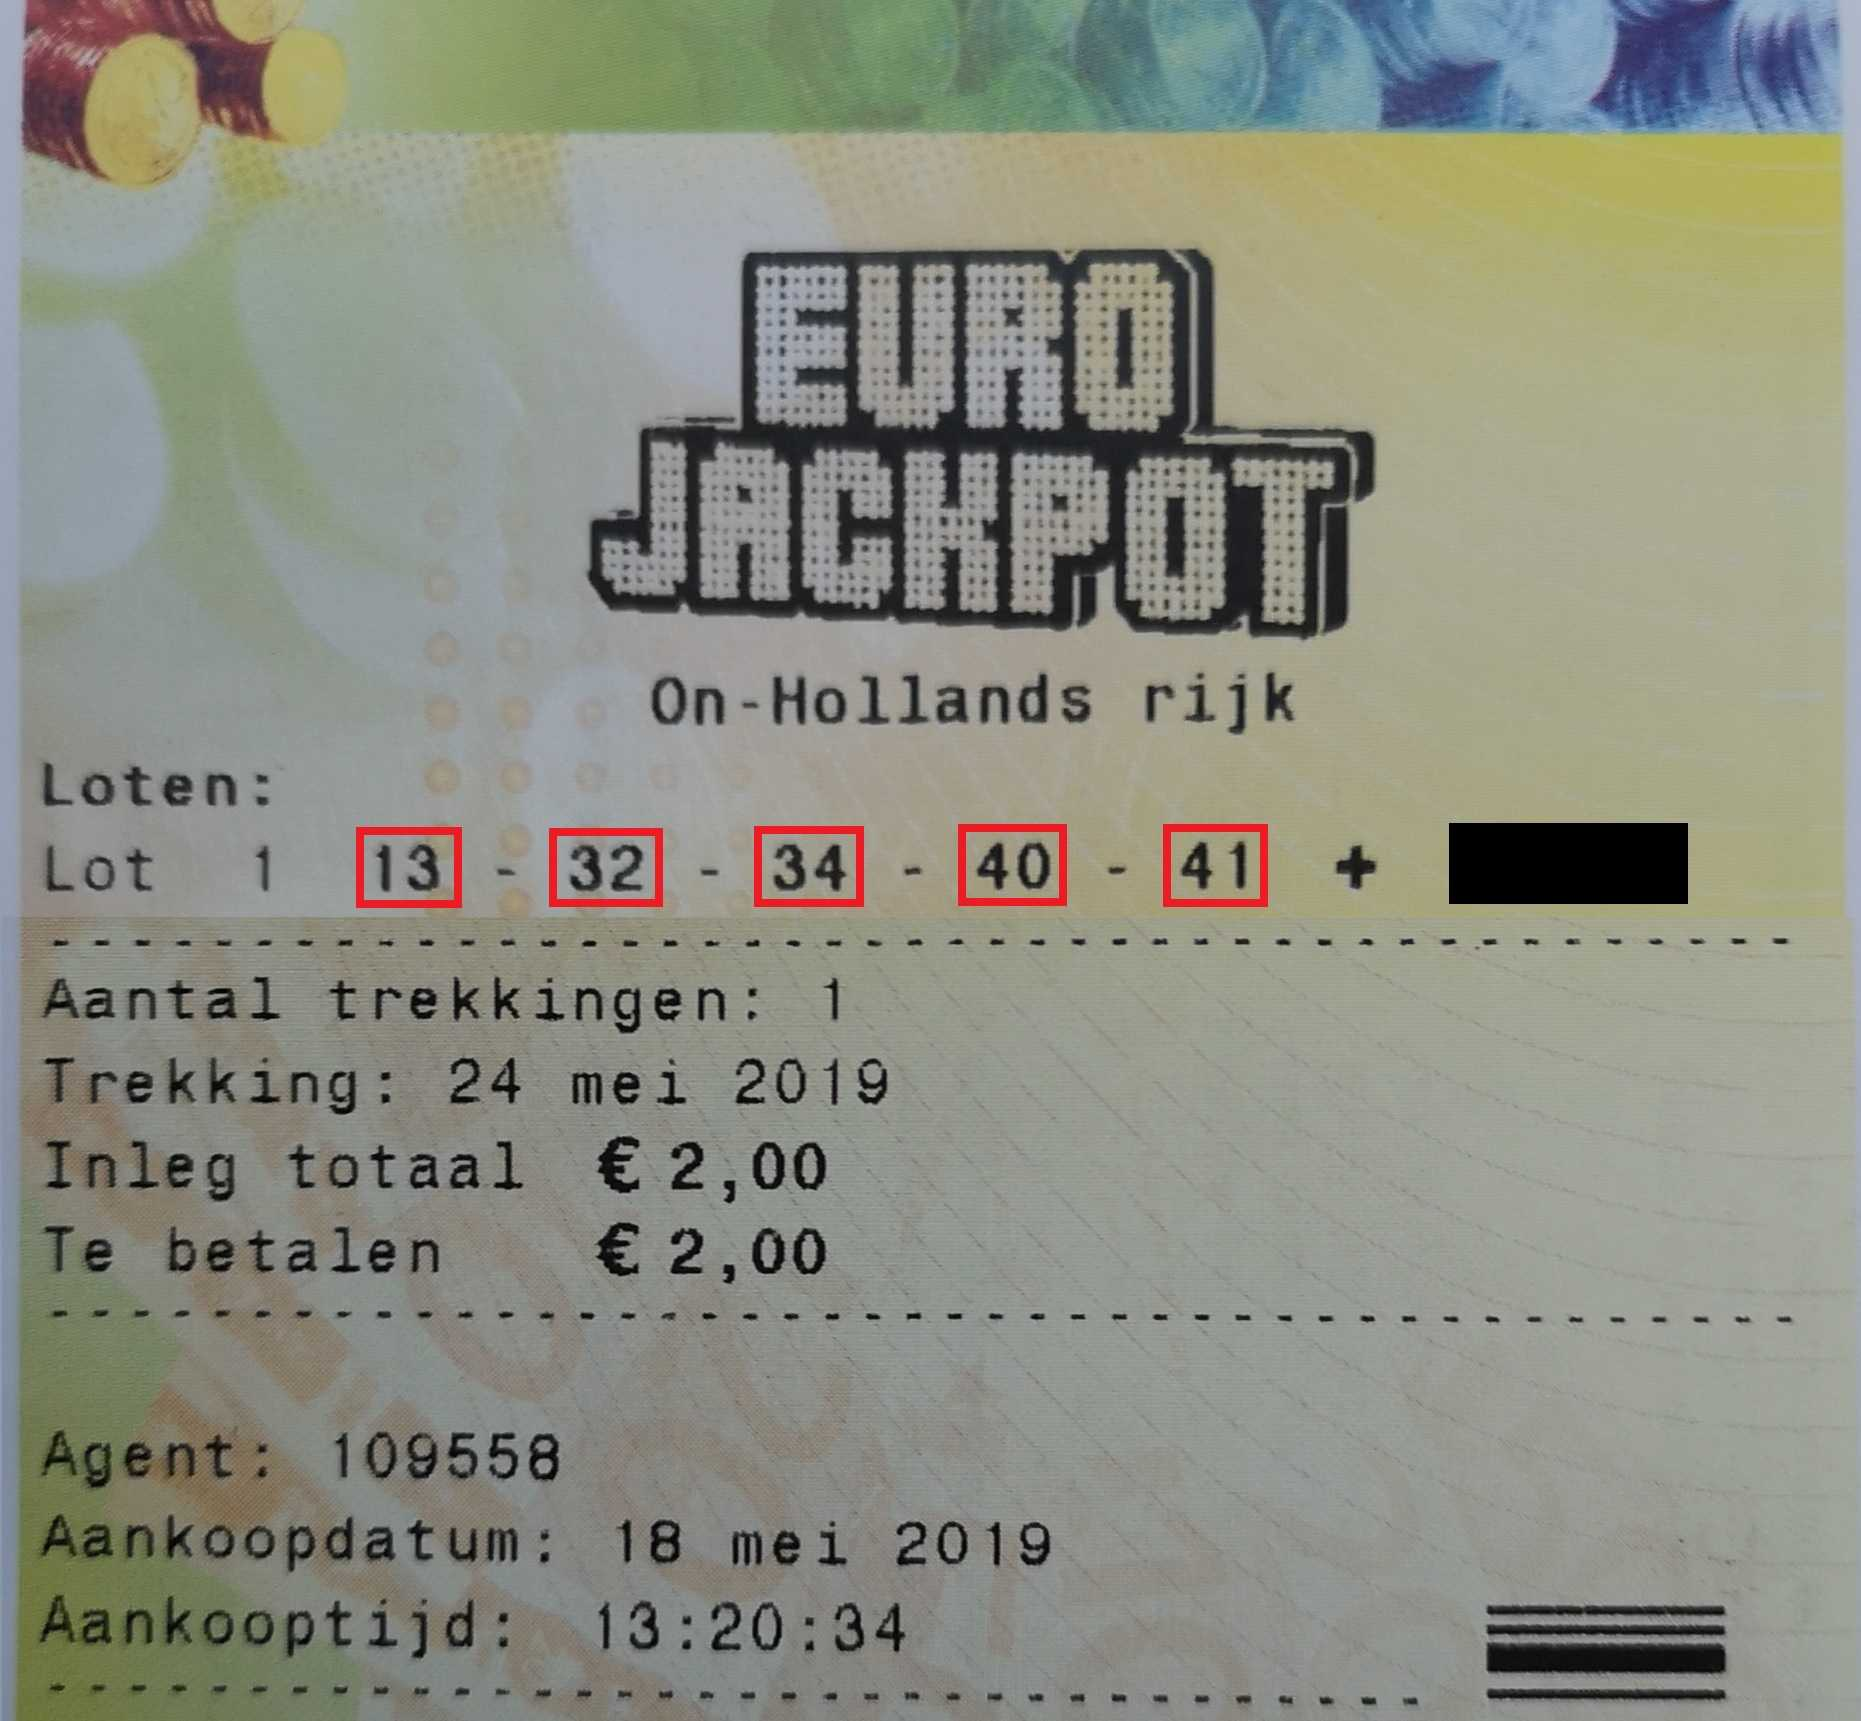 Eurojackpot: latest results and online play